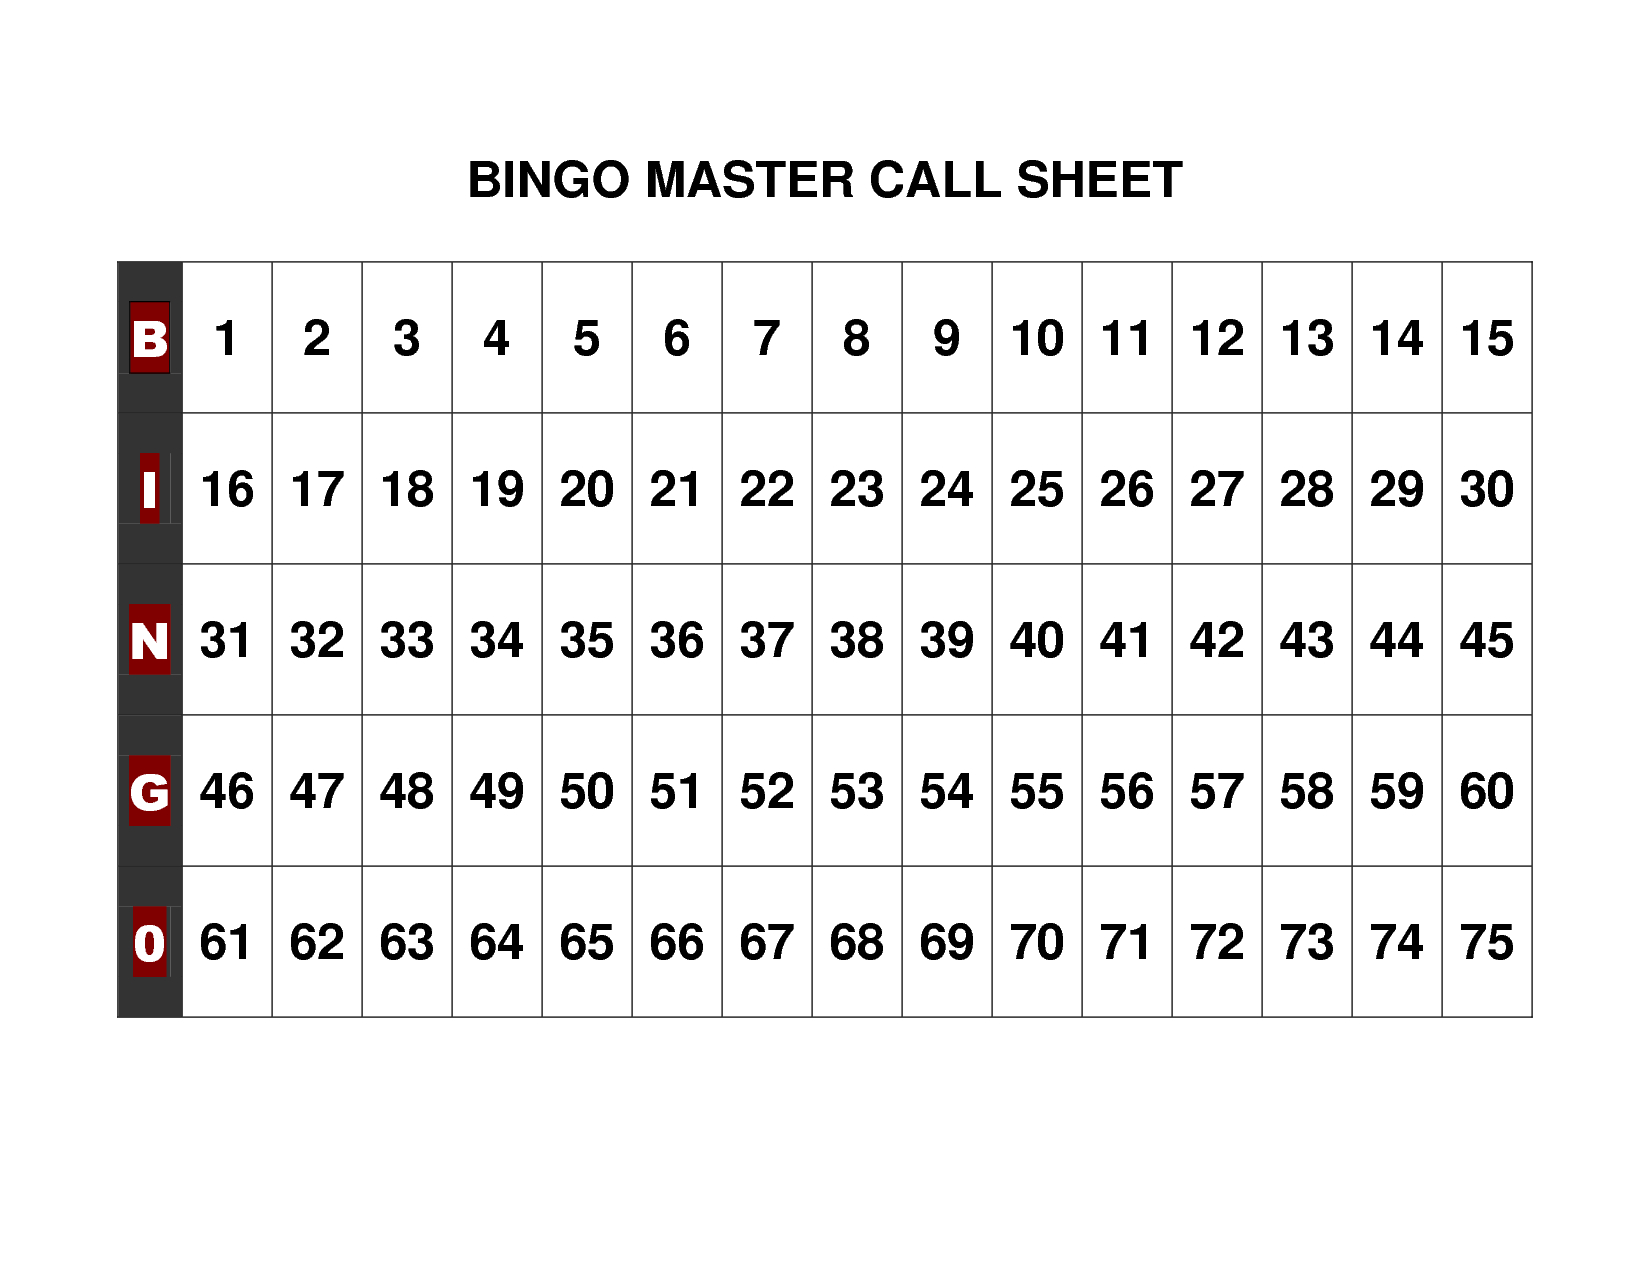 Free+Printable+Bingo+Call+Sheet | Bingo | Pinterest | Bingo, Bingo - Free Printable Bingo Cards 1 75